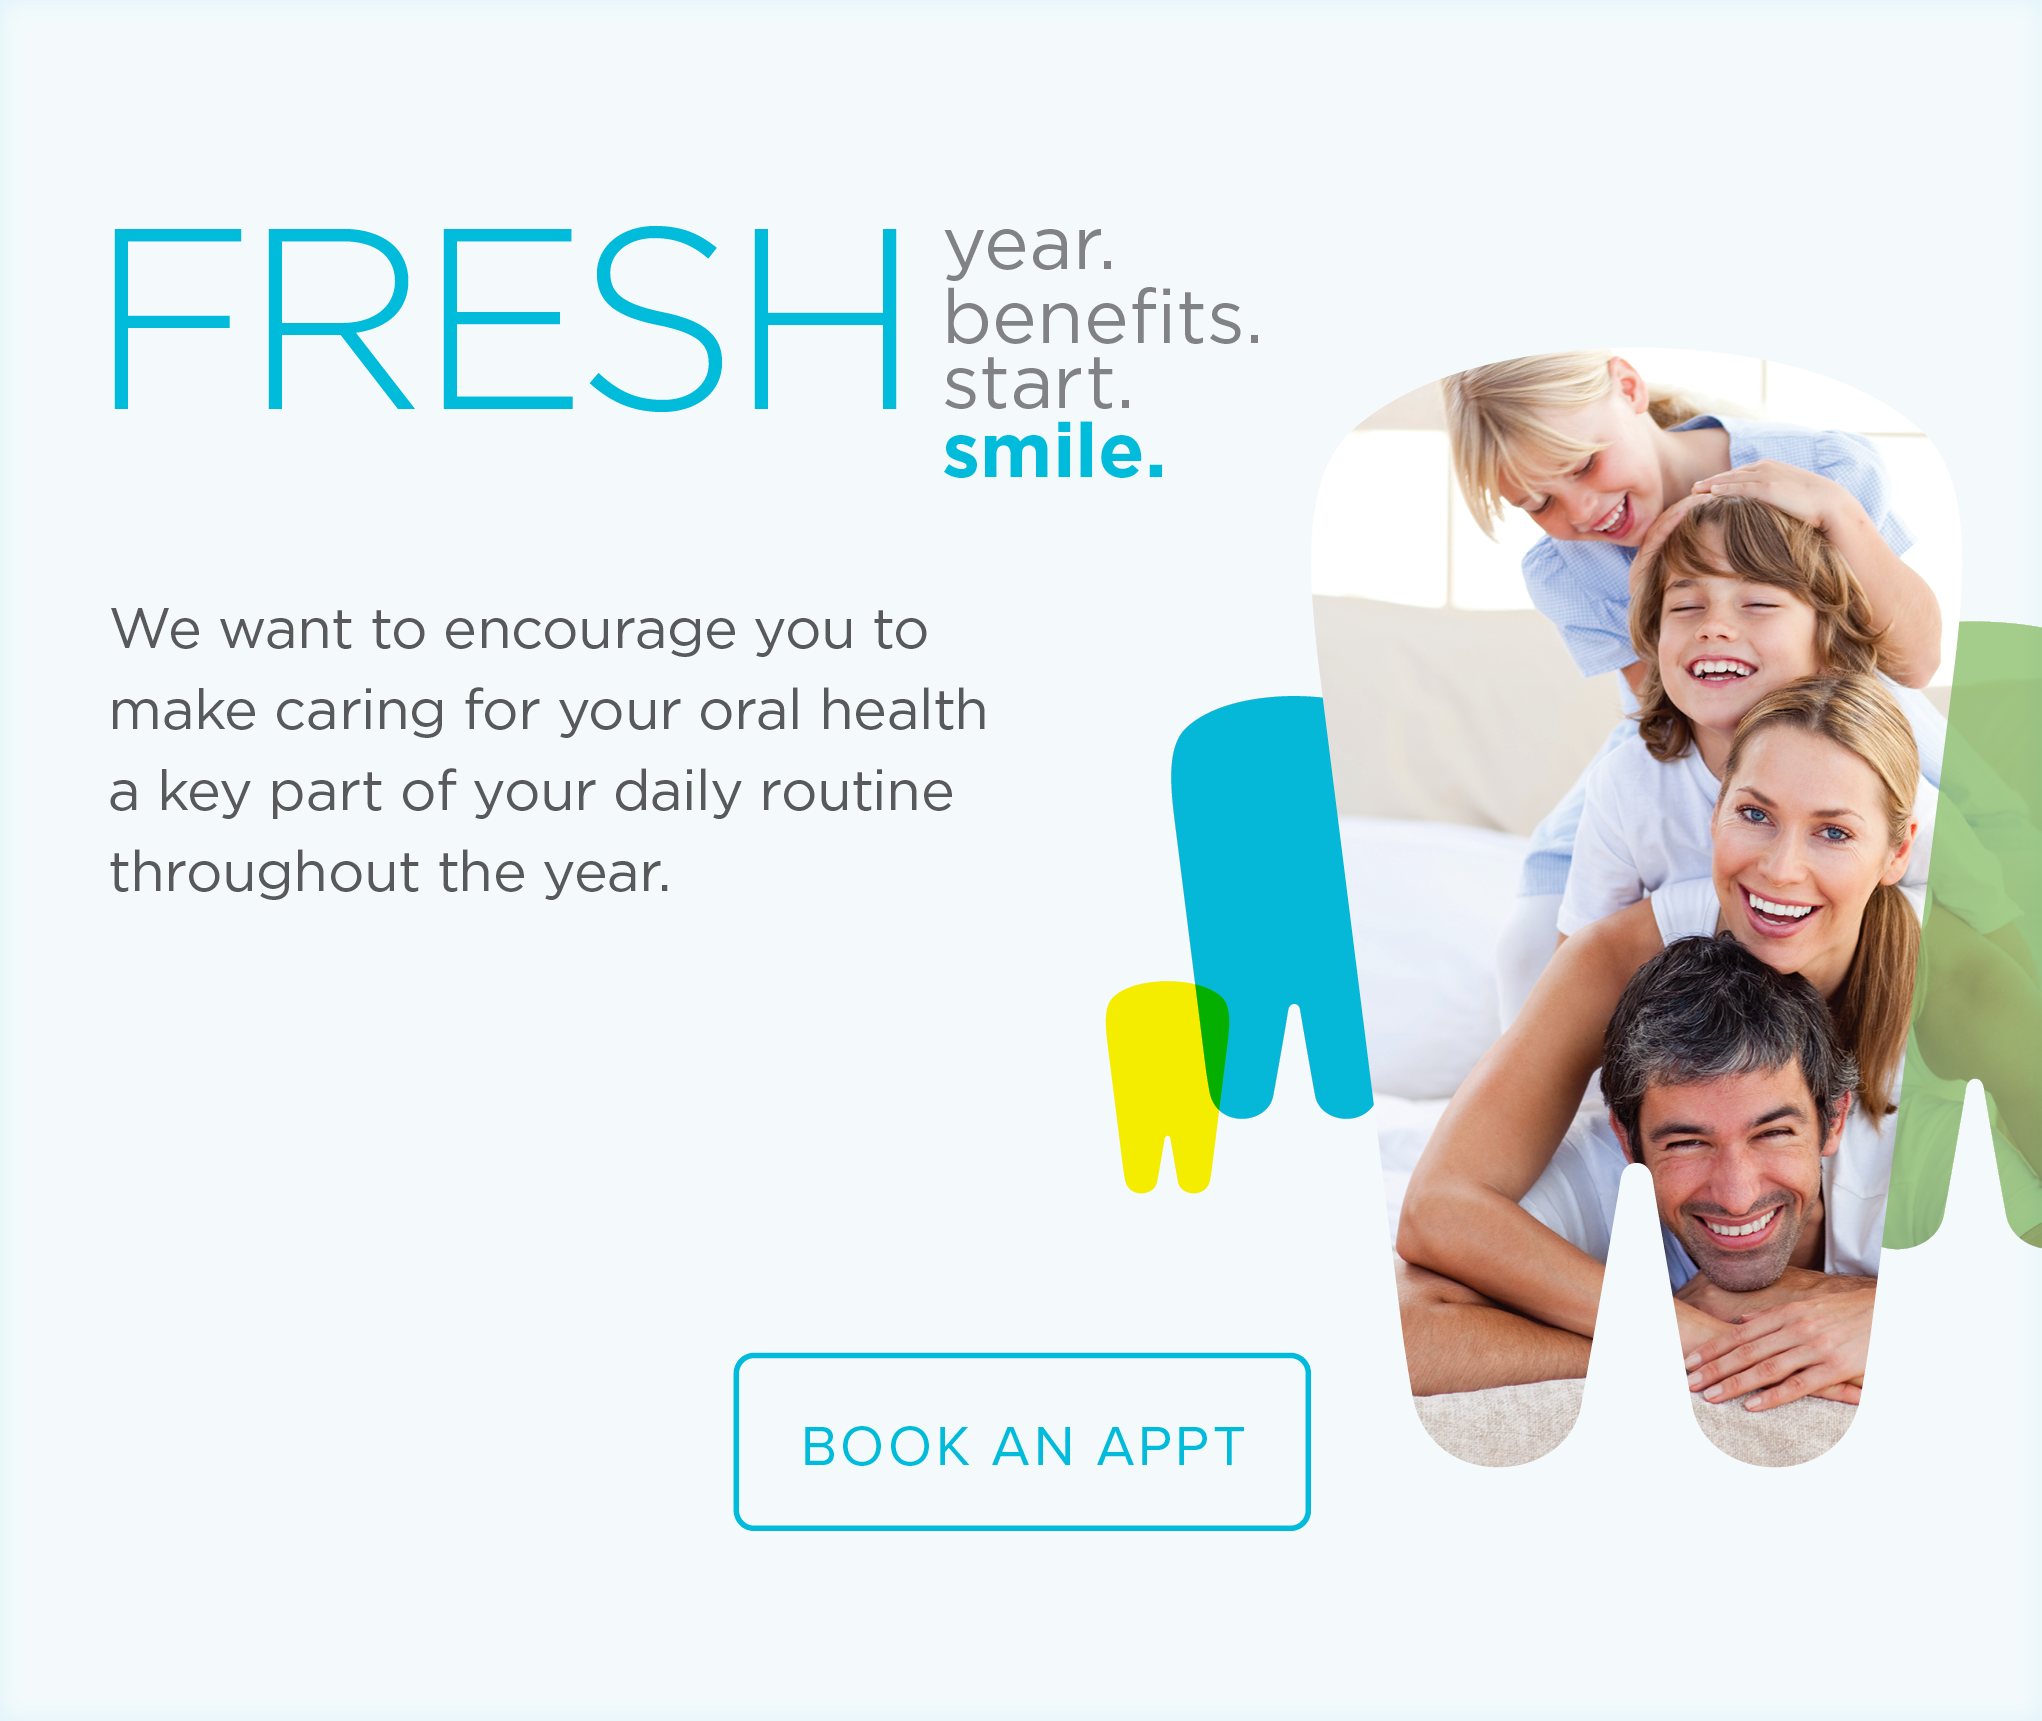 Bay Park Smiles Dentistry - Make the Most of Your Benefits